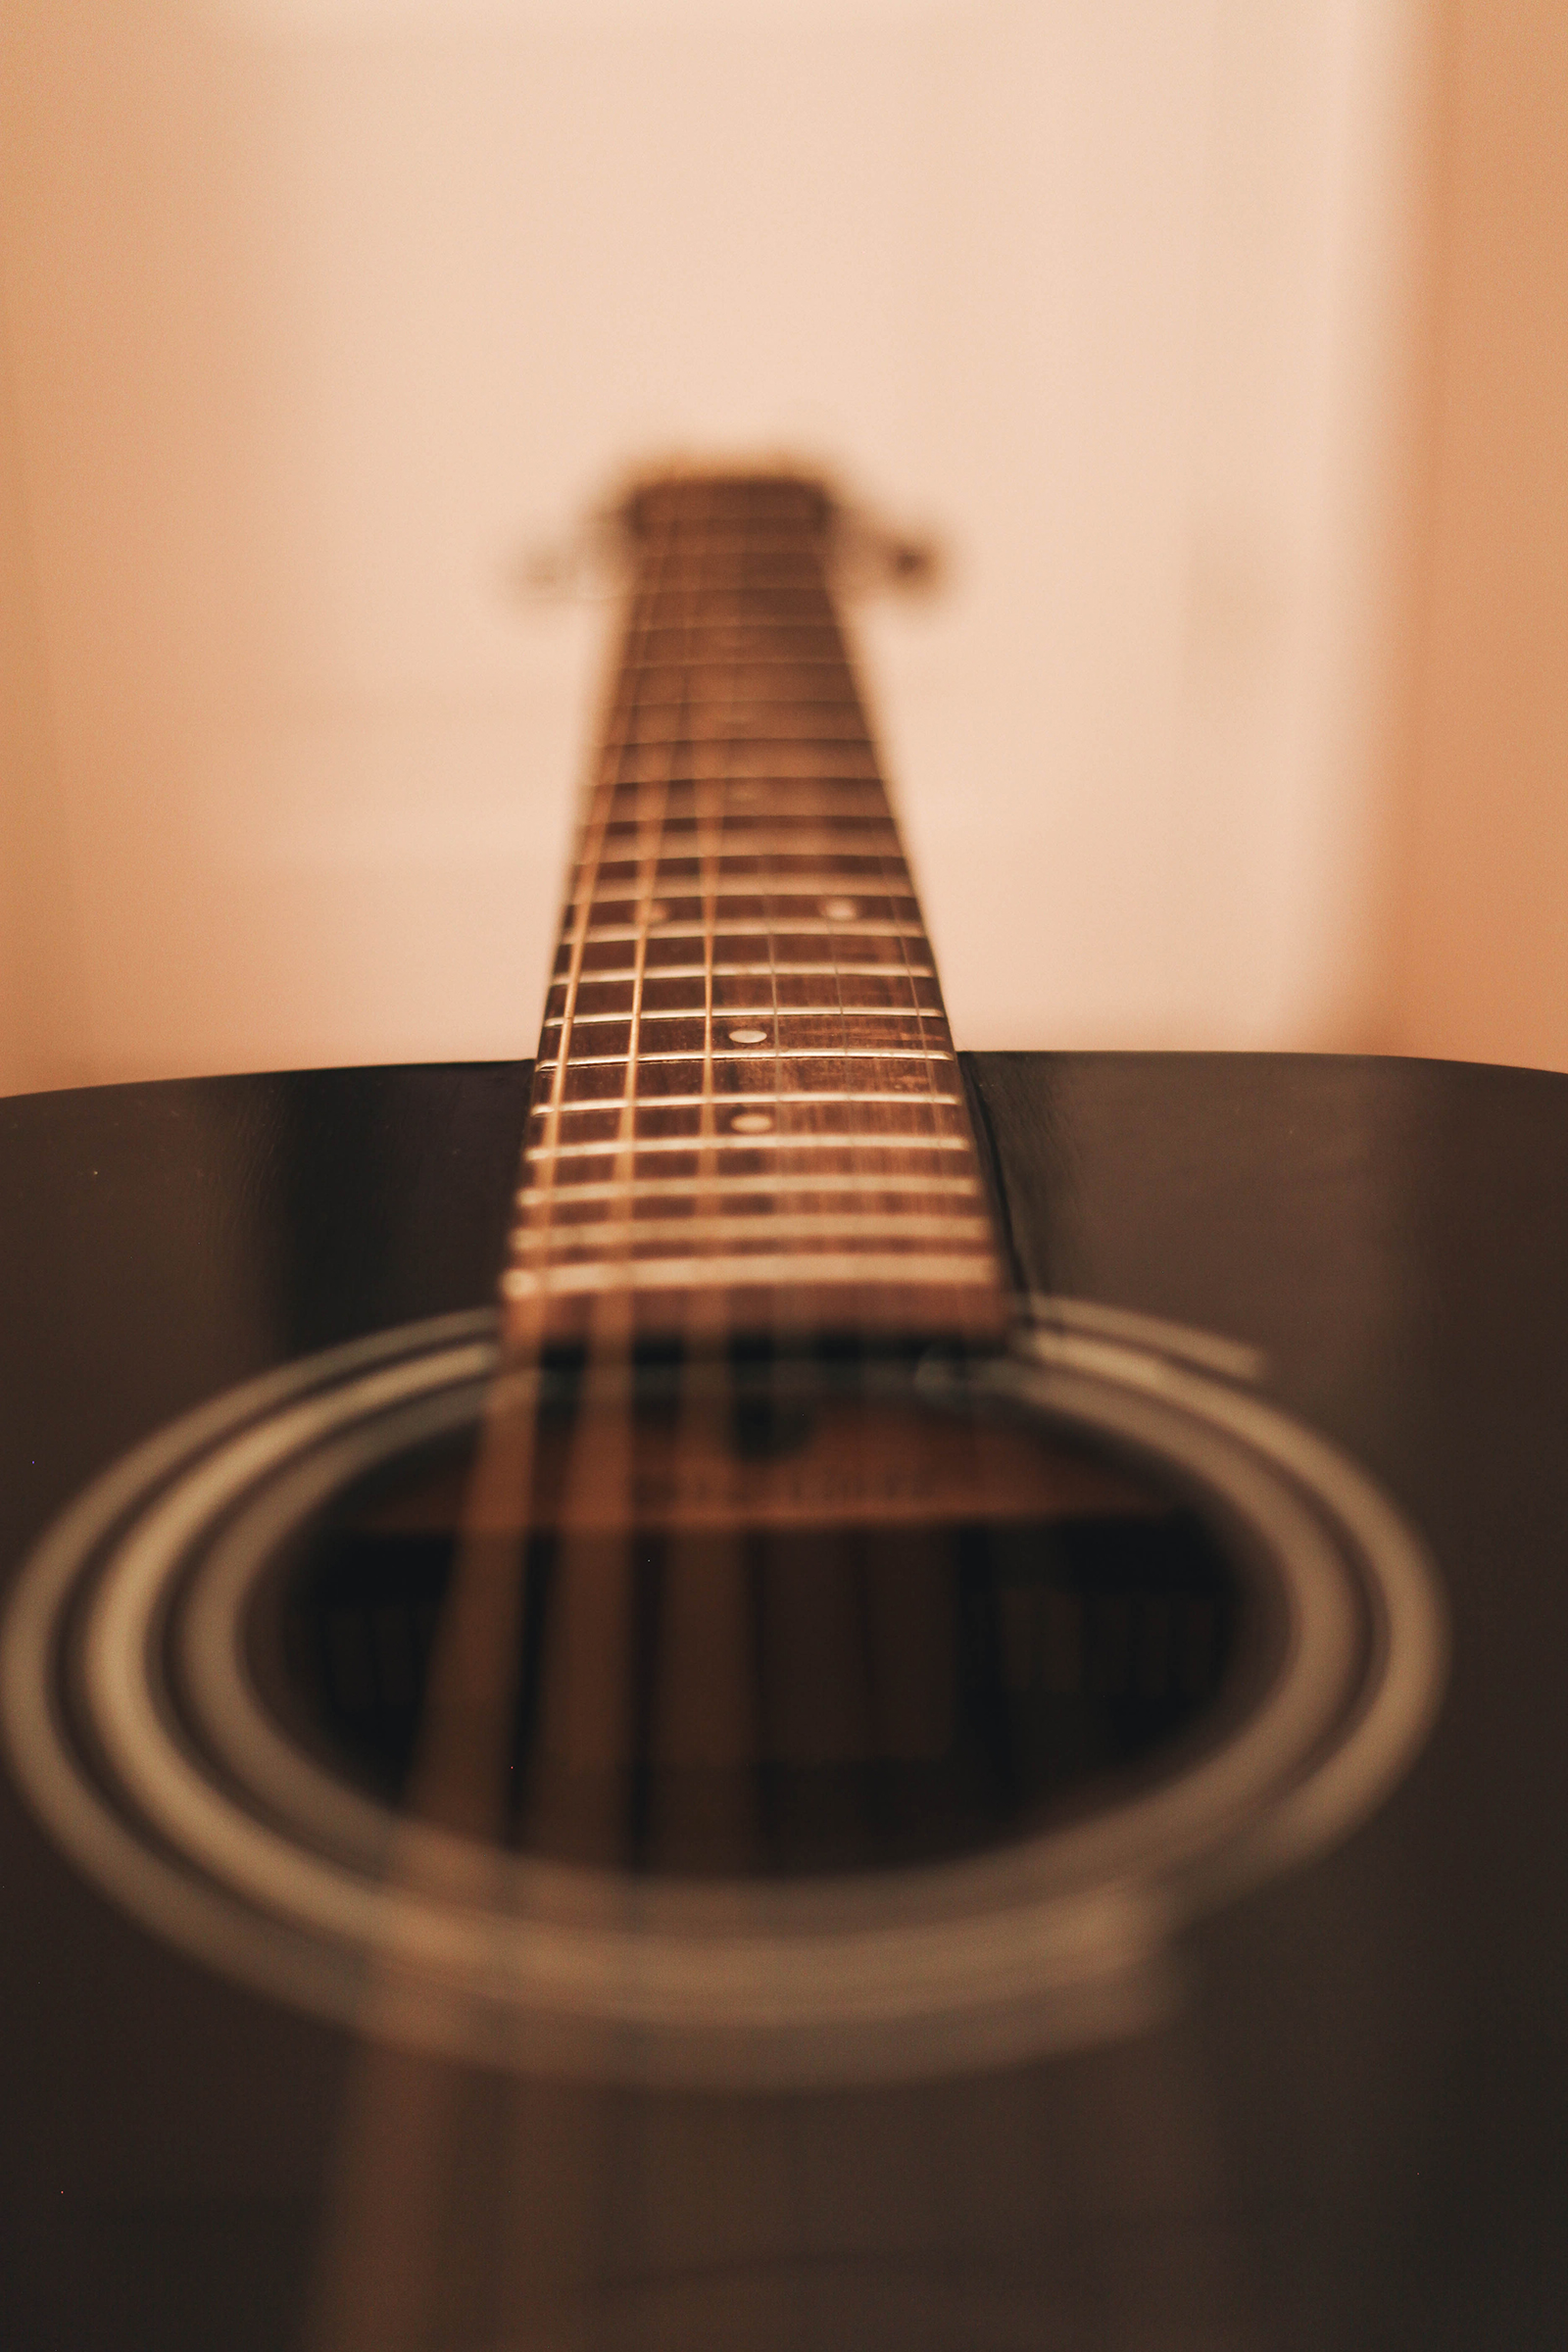 Best 100 Guitar Images Download Free Pictures on Unsplash